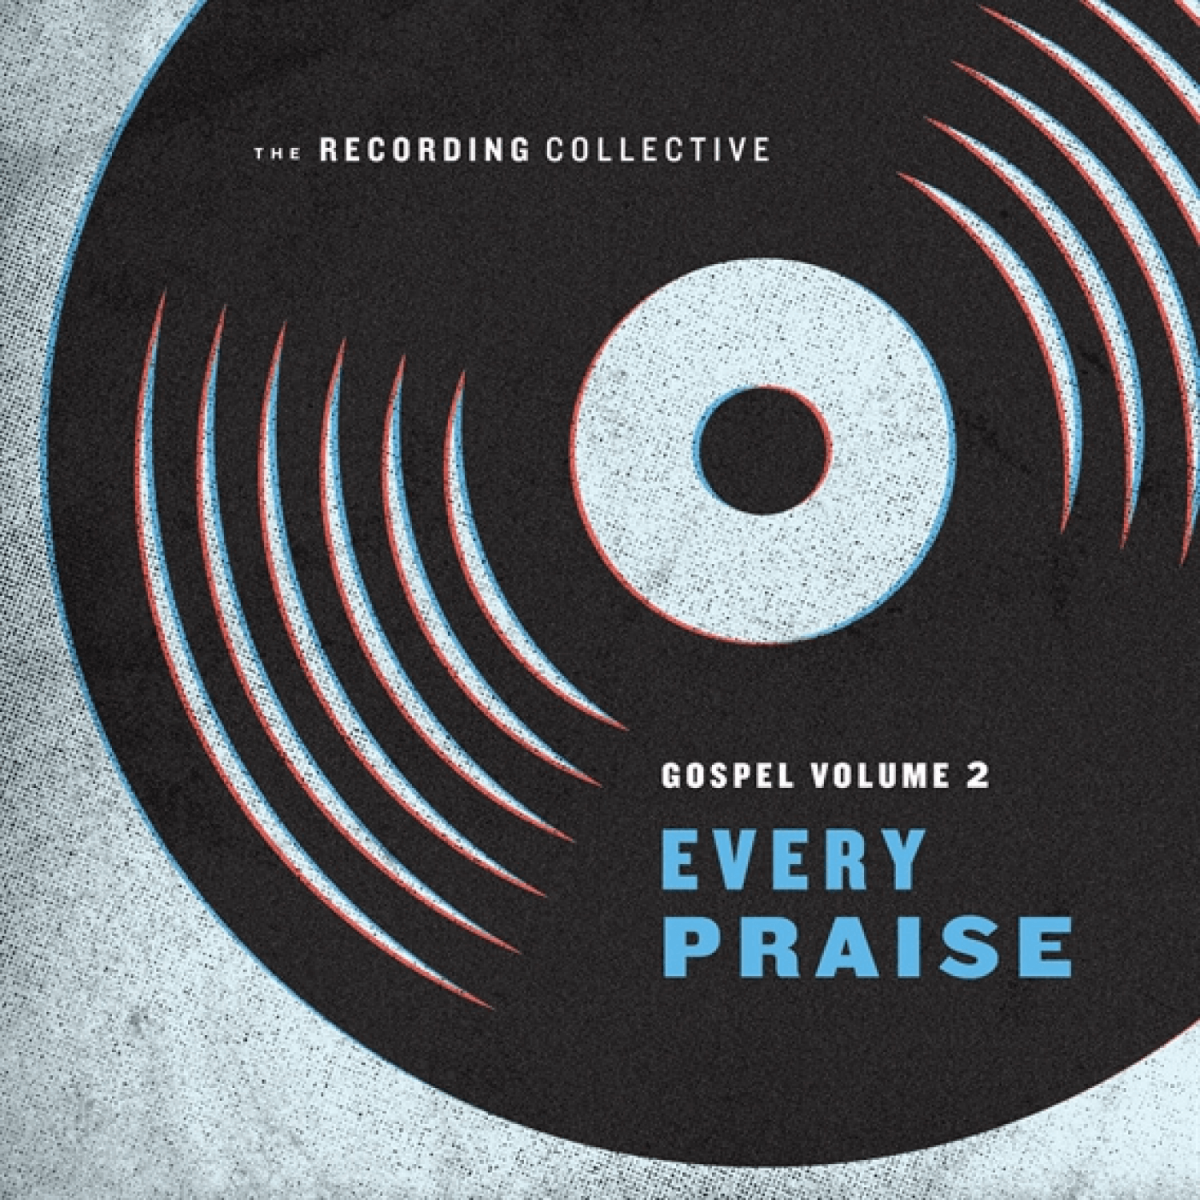 gospel vol. 2 - every praise